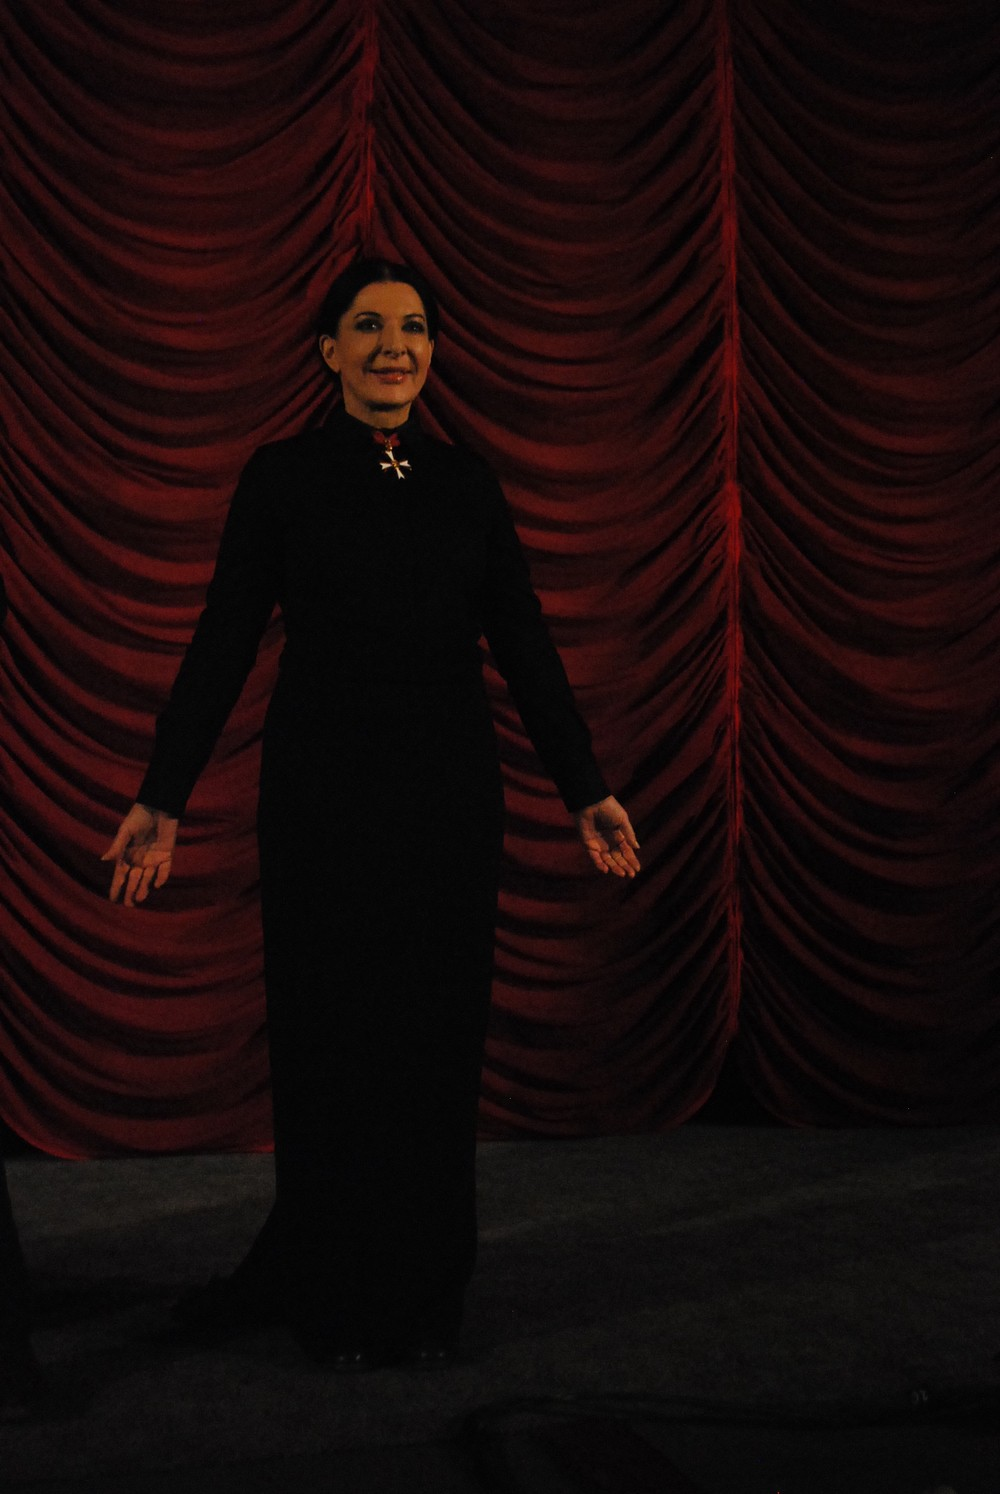 Marina Abramović at the Gartenbaukino for the premiere of the Artist is Present at the Vienna International Film Festival, Vienna, Austria.